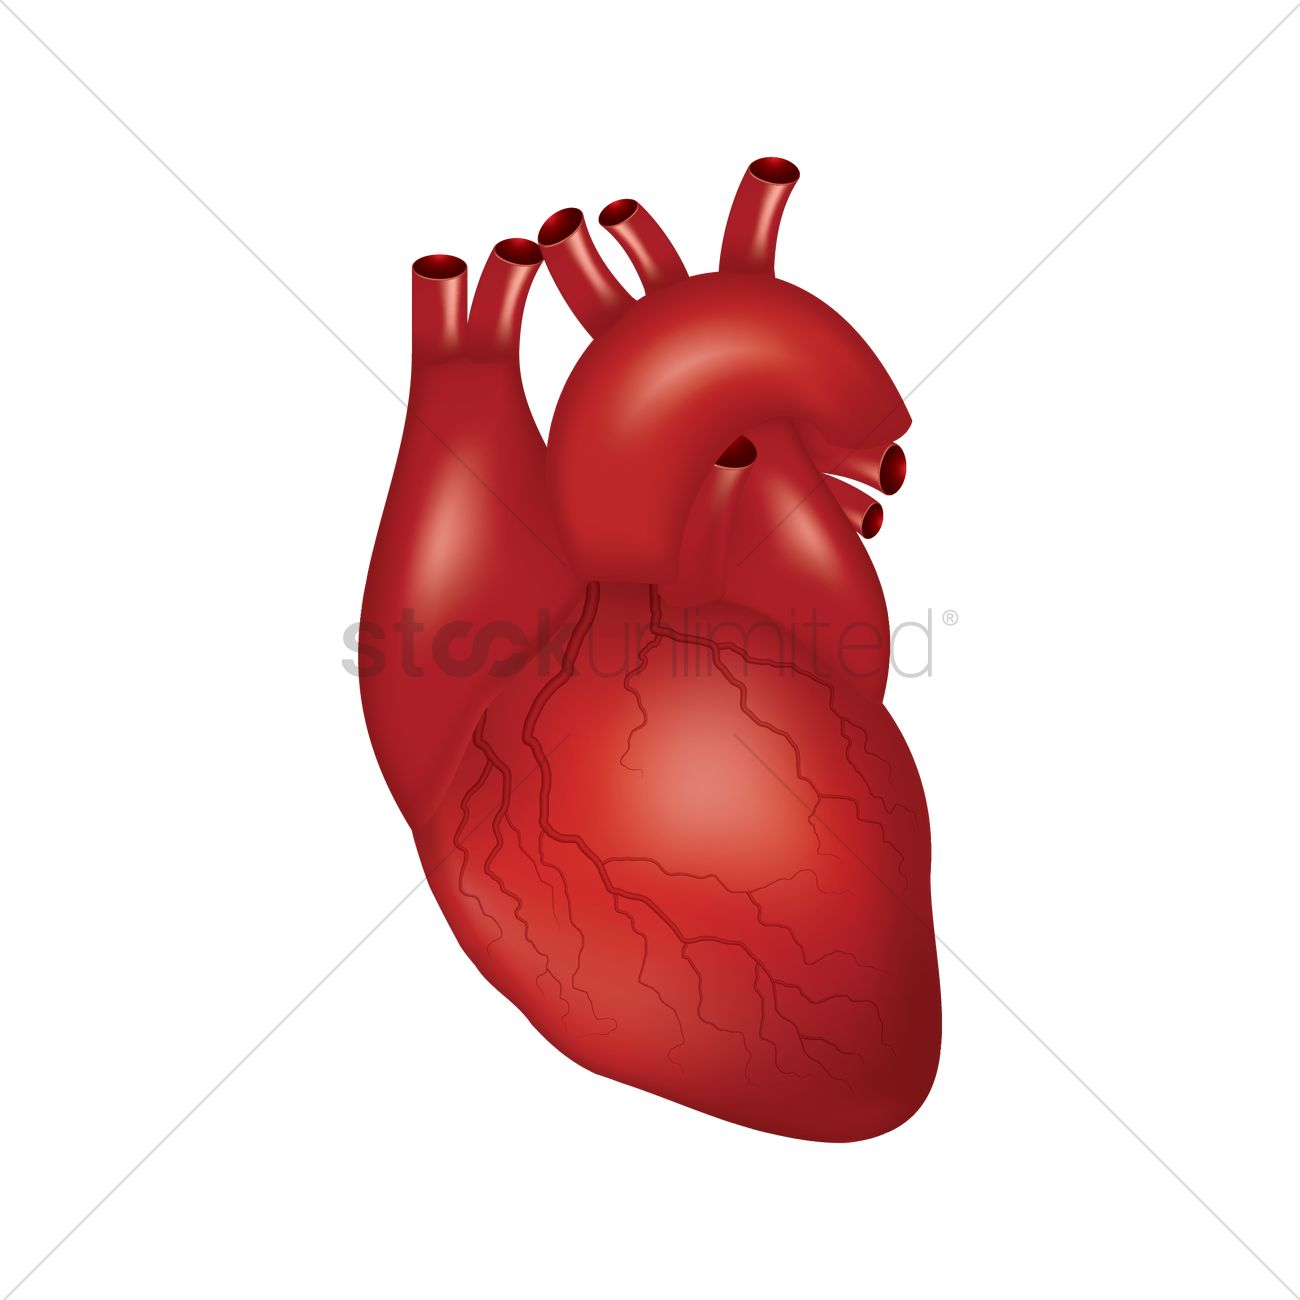 human heart vector image 1866249 stockunlimited rh stockunlimited com human heart vector image human heart vector art